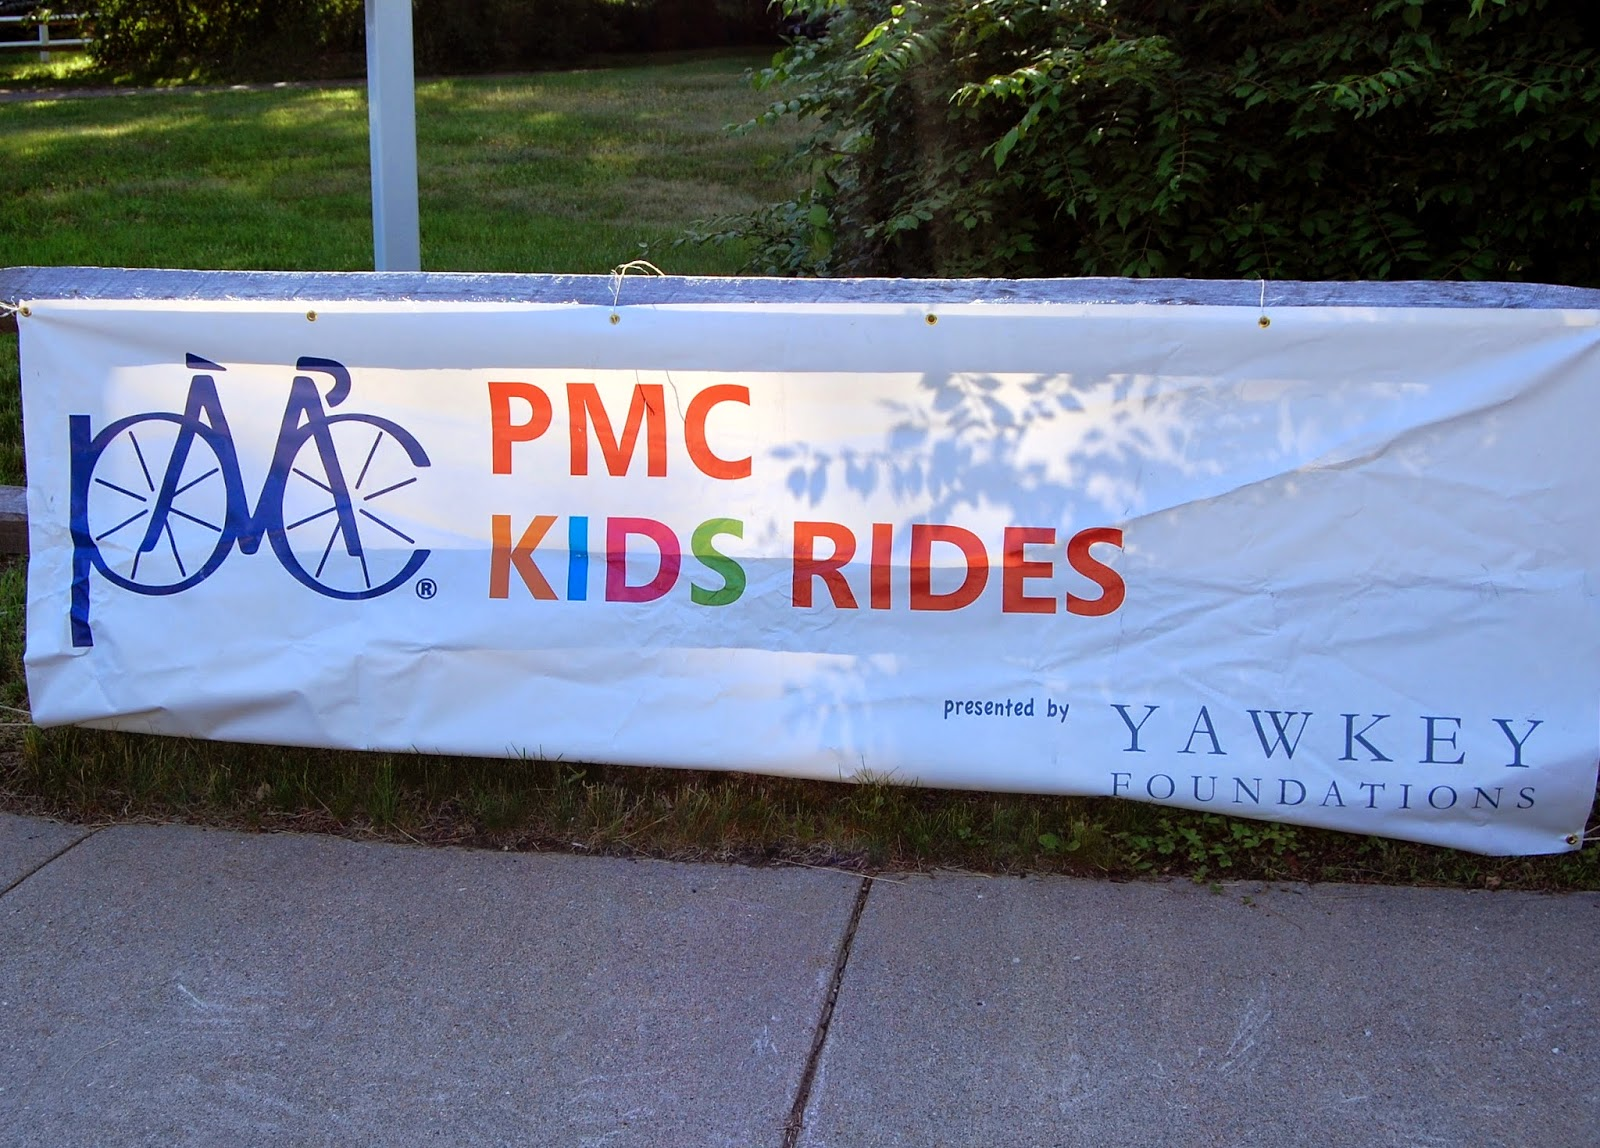 The PMC Kids Rides sign